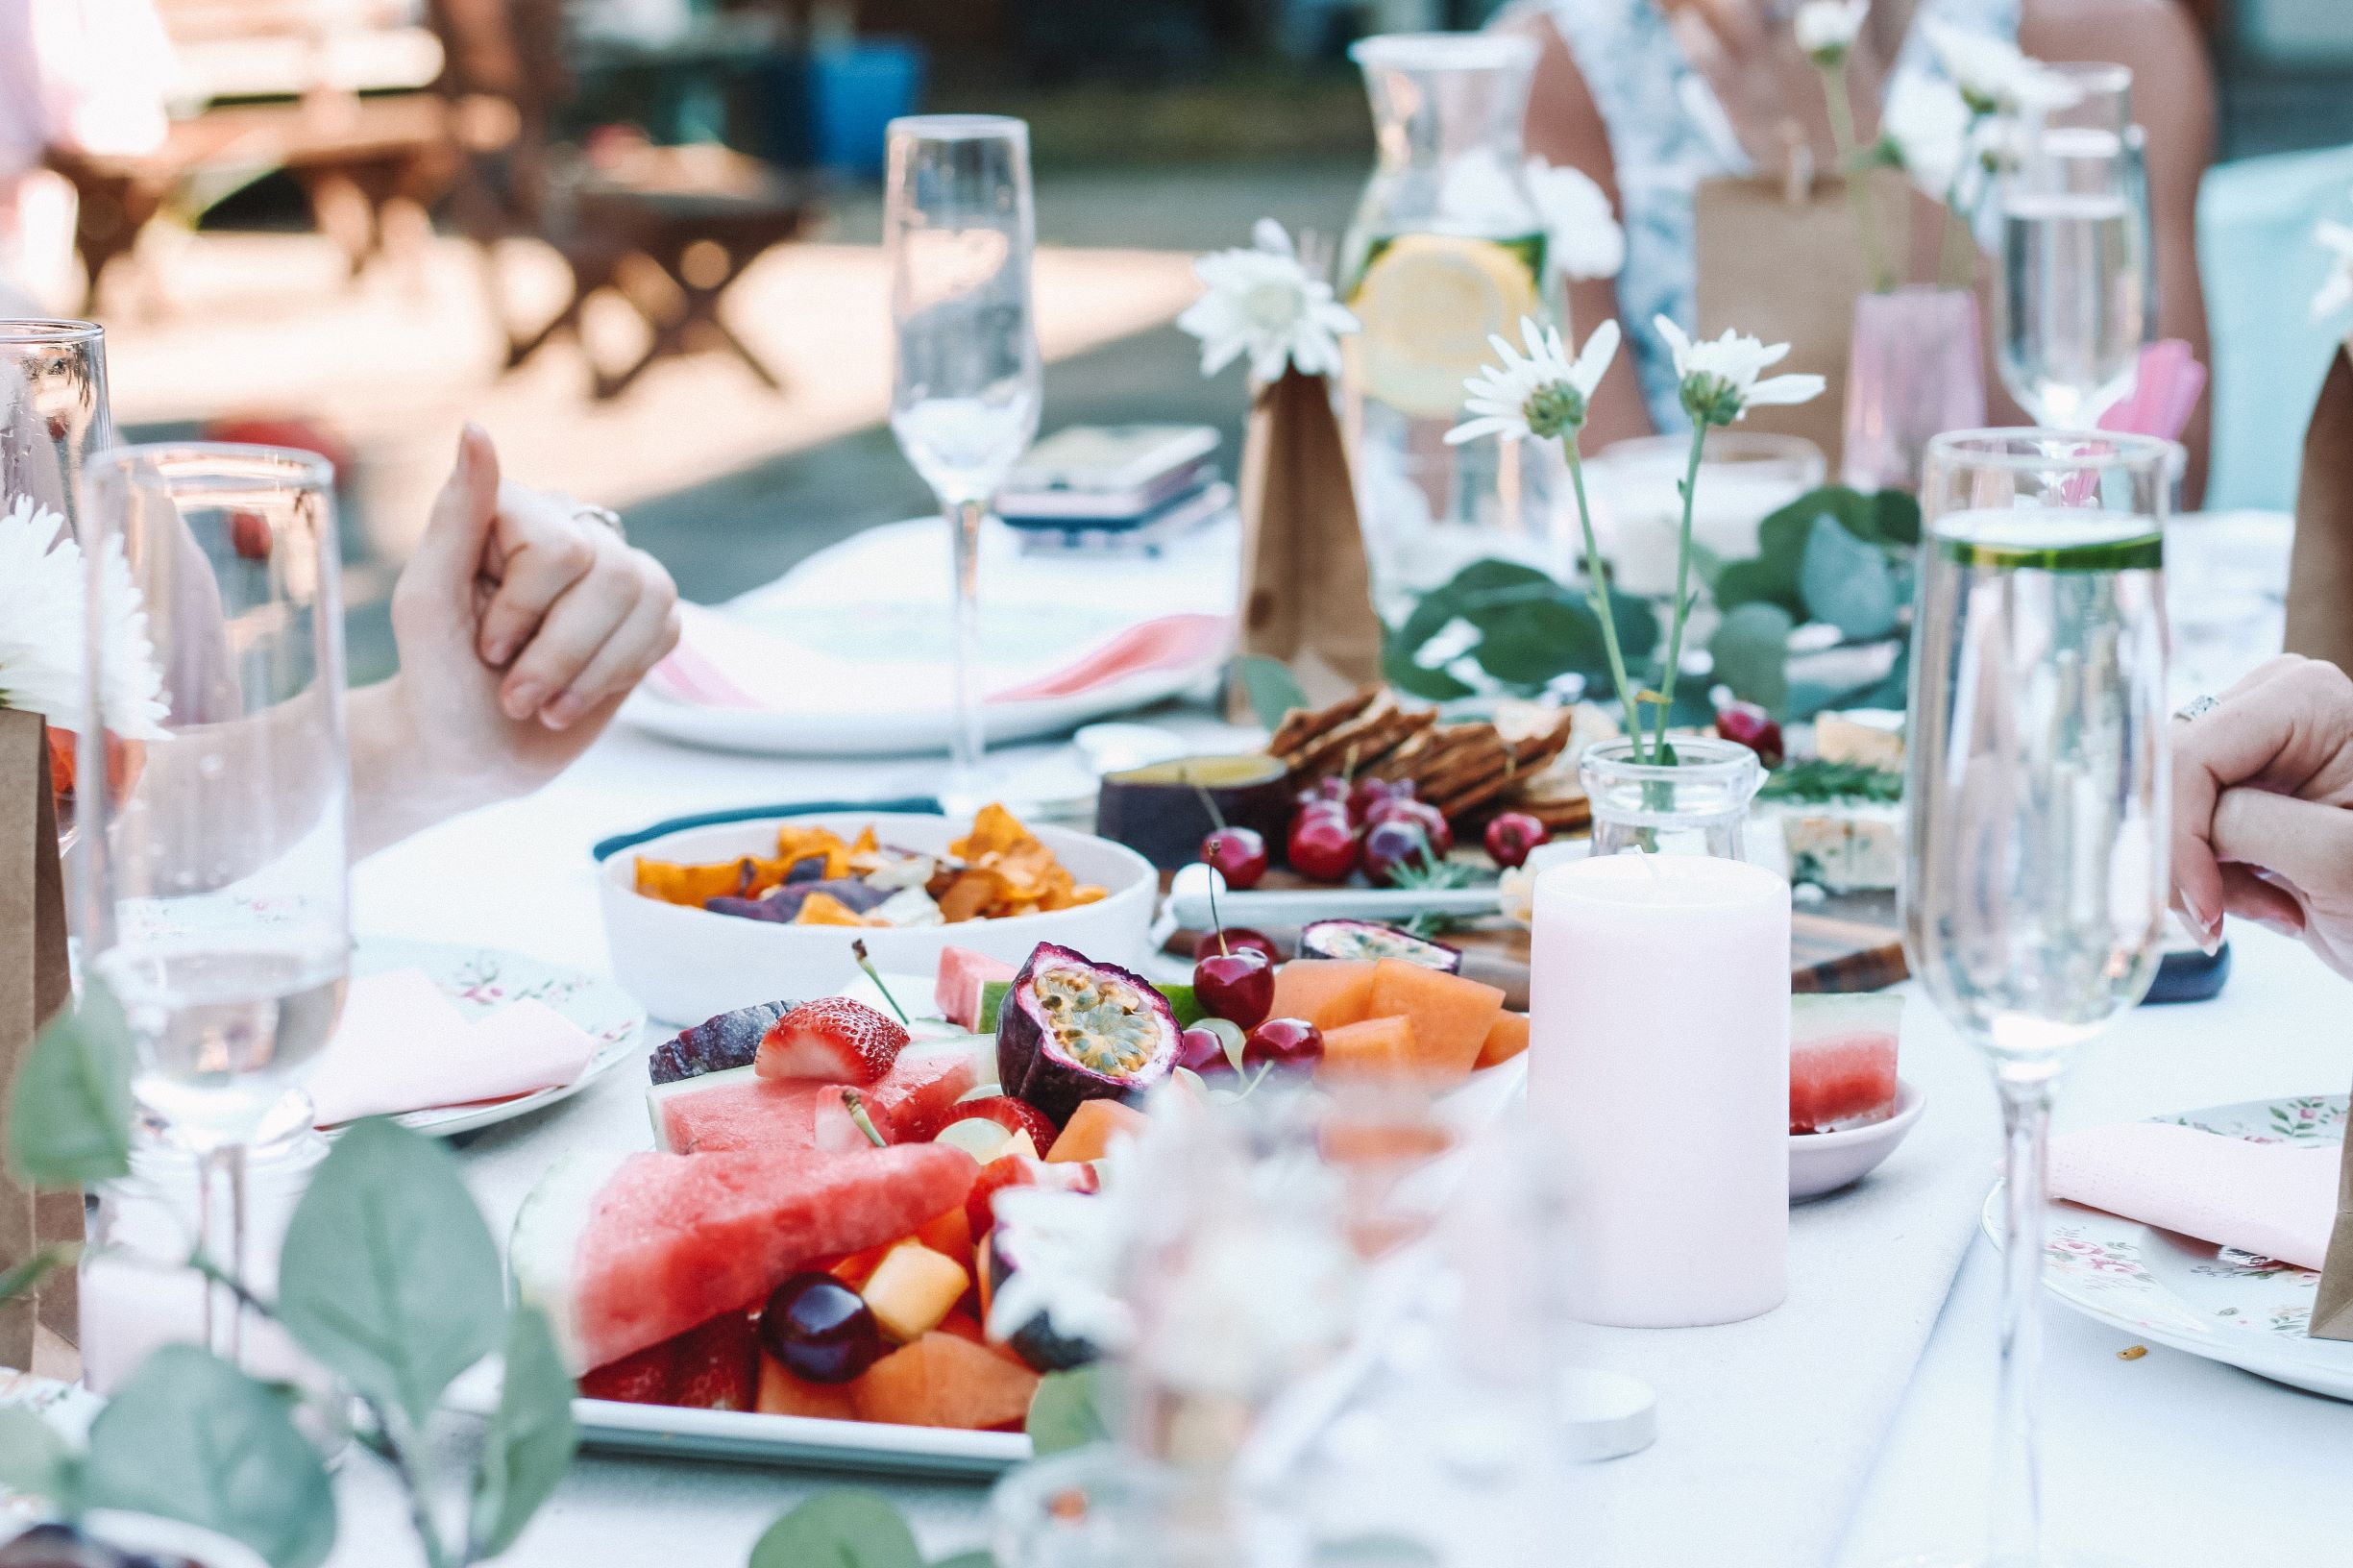 8 Tips For Hosting Your First Dinner Party